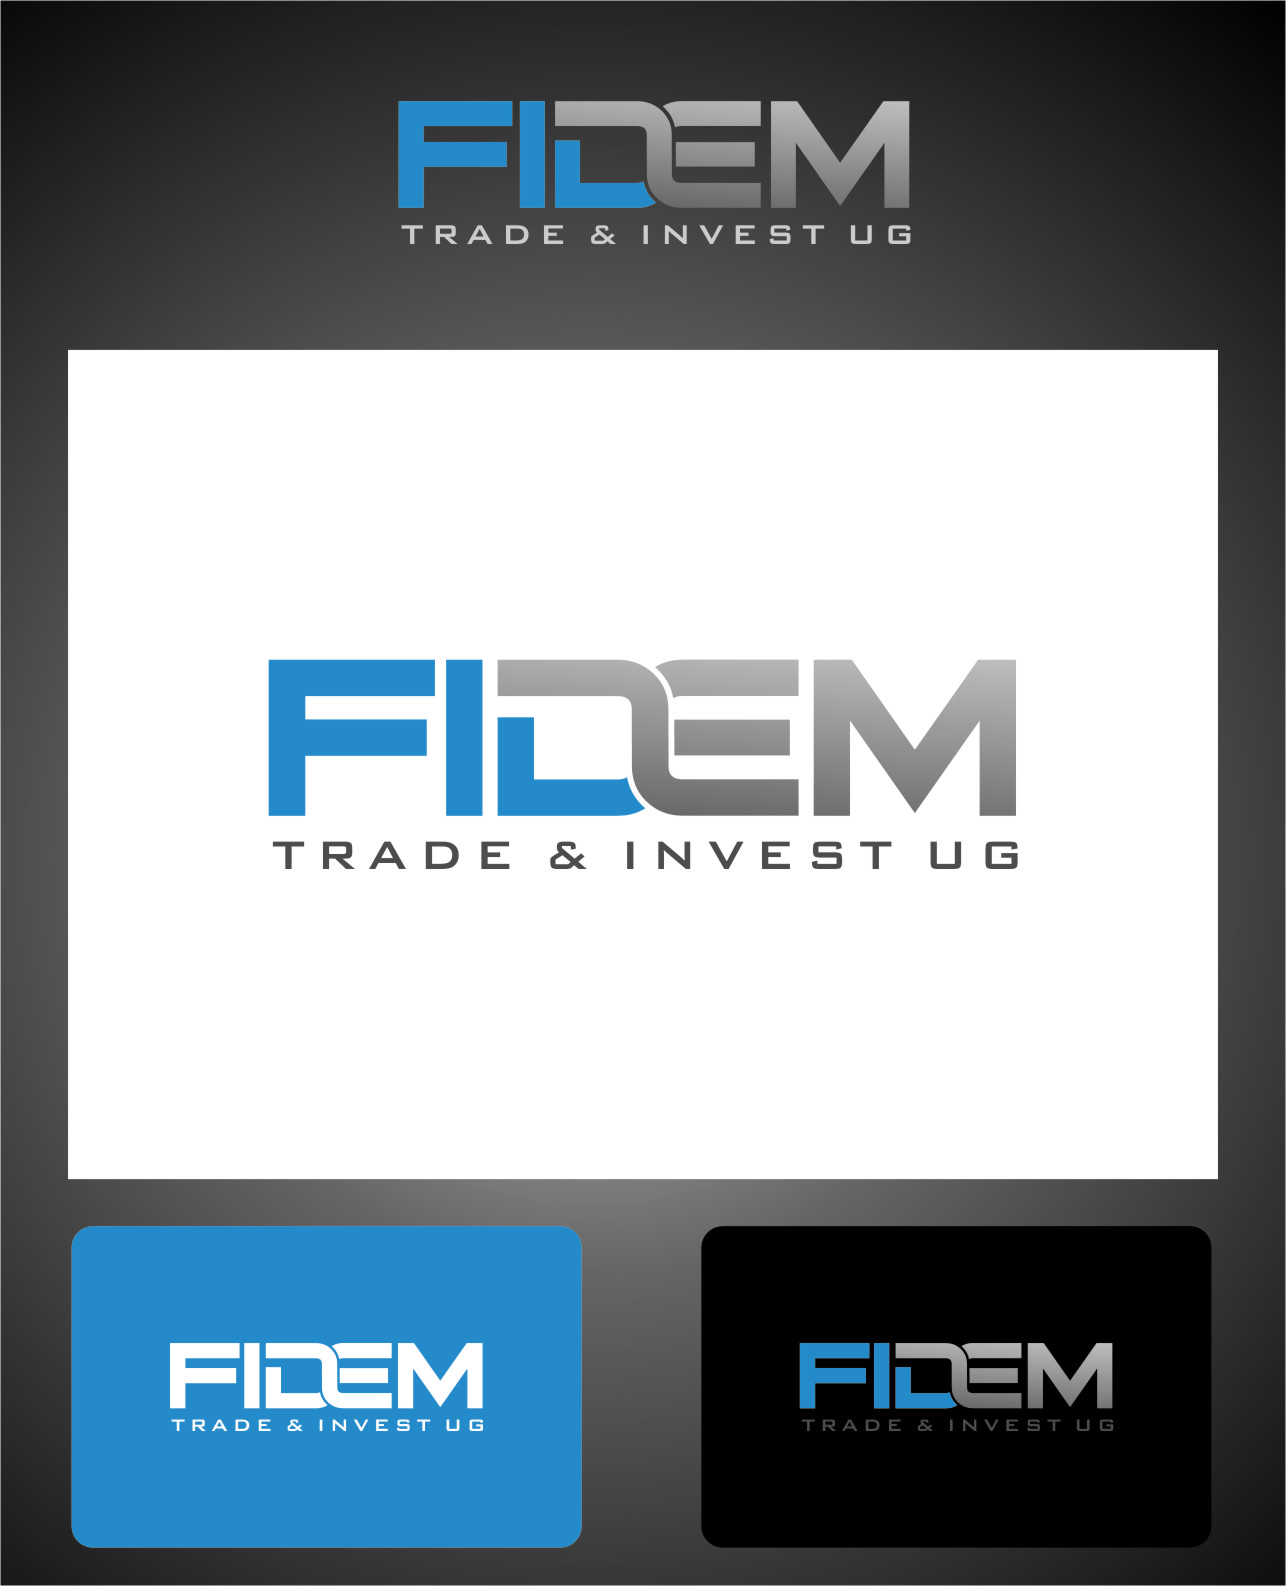 Logo Design by RasYa Muhammad Athaya - Entry No. 600 in the Logo Design Contest Professional Logo Design for FIDEM Trade & Invest UG.